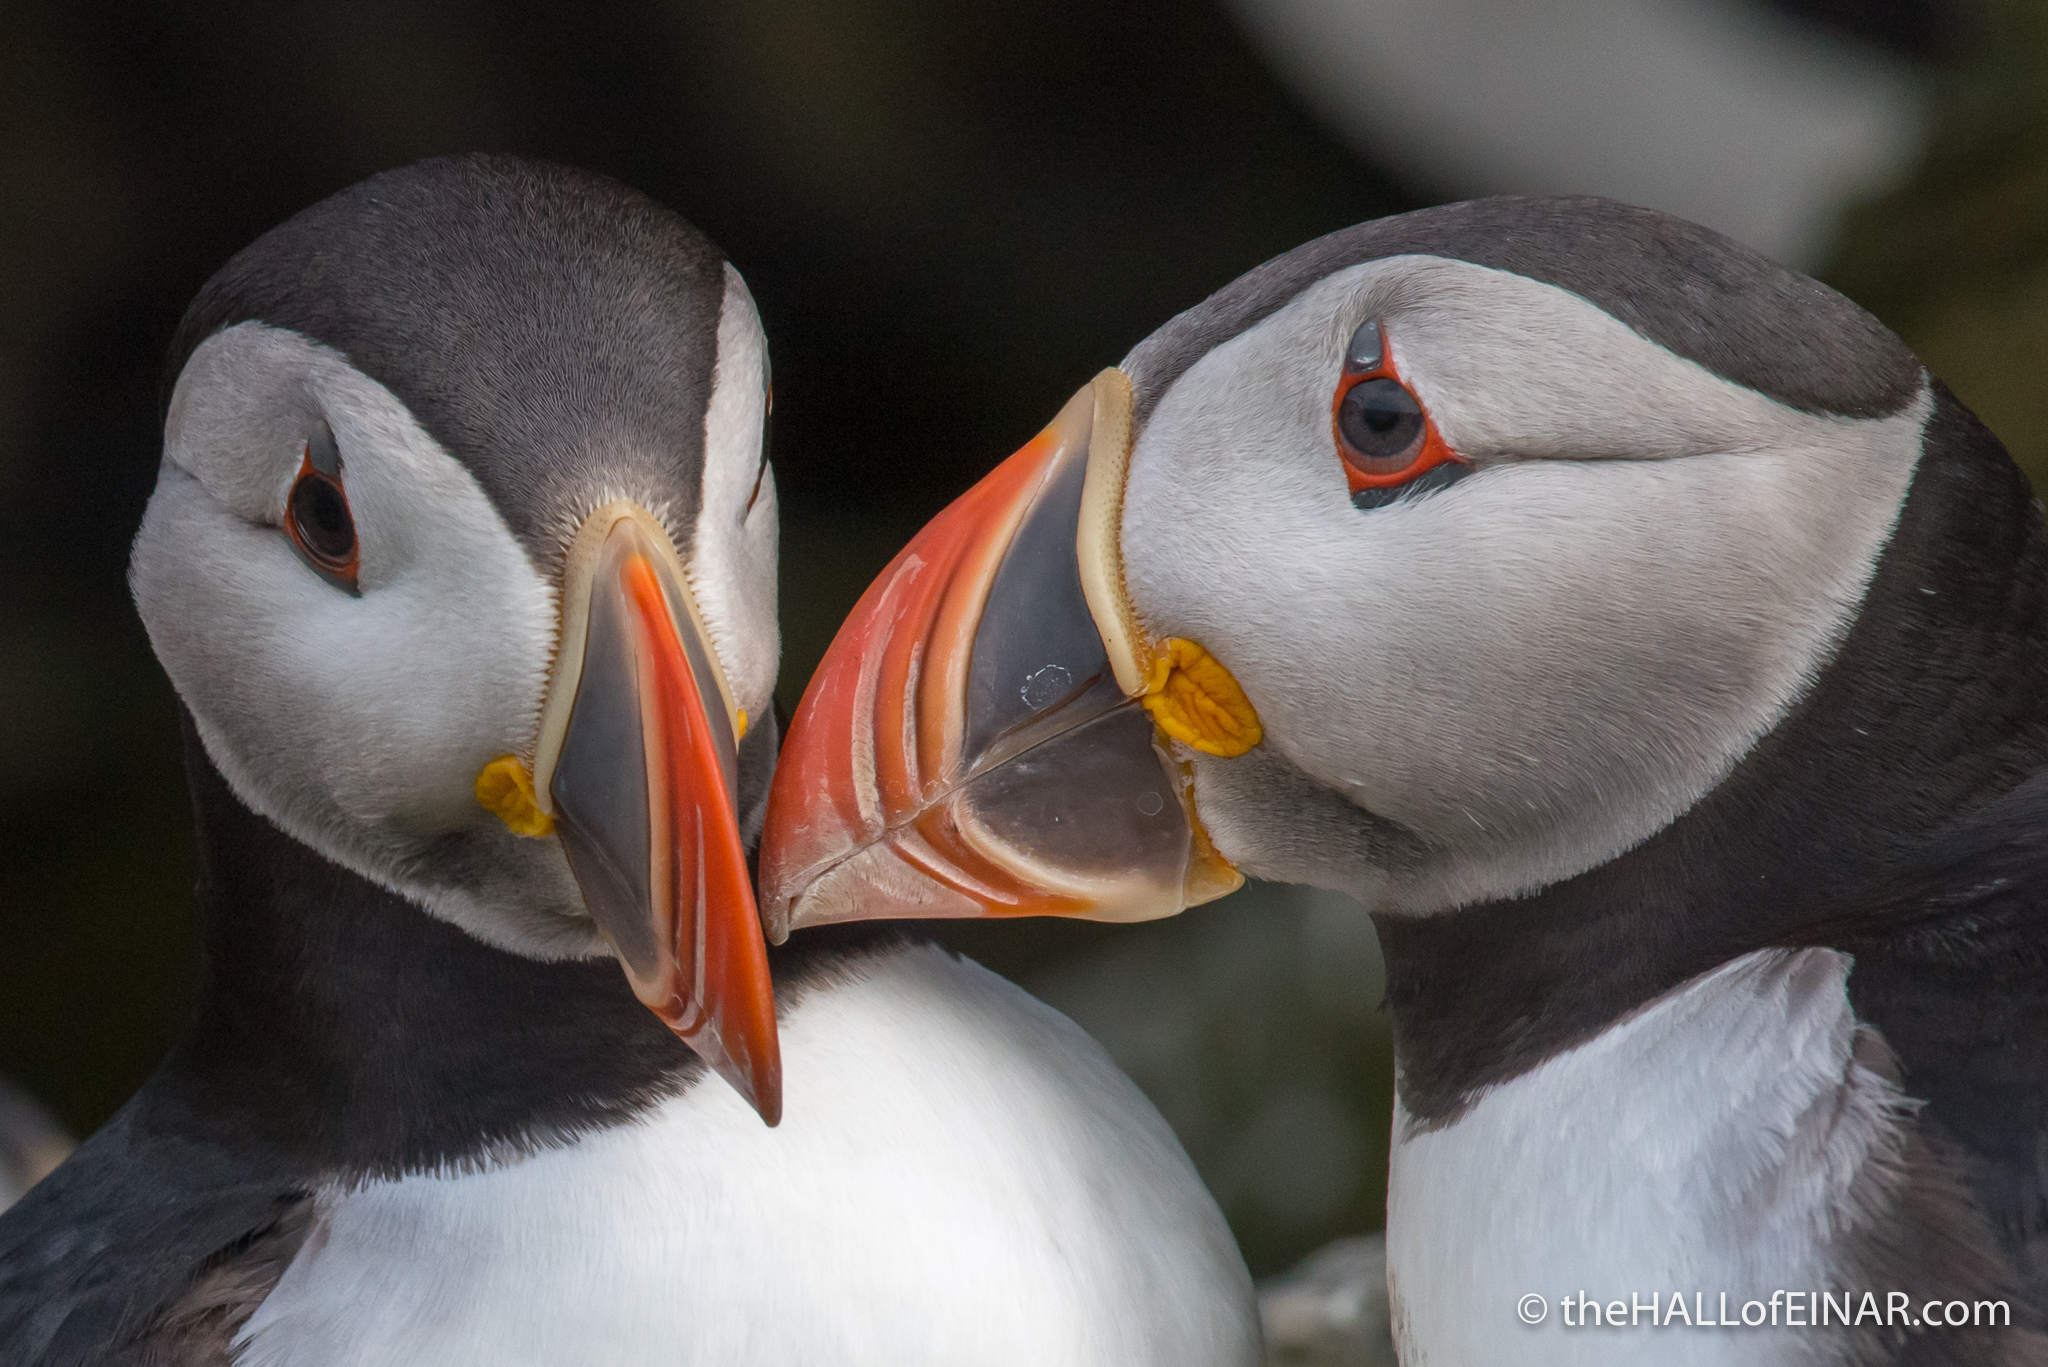 Puffin Love - The Hall of Einar - photograph (c) David Bailey (not the)